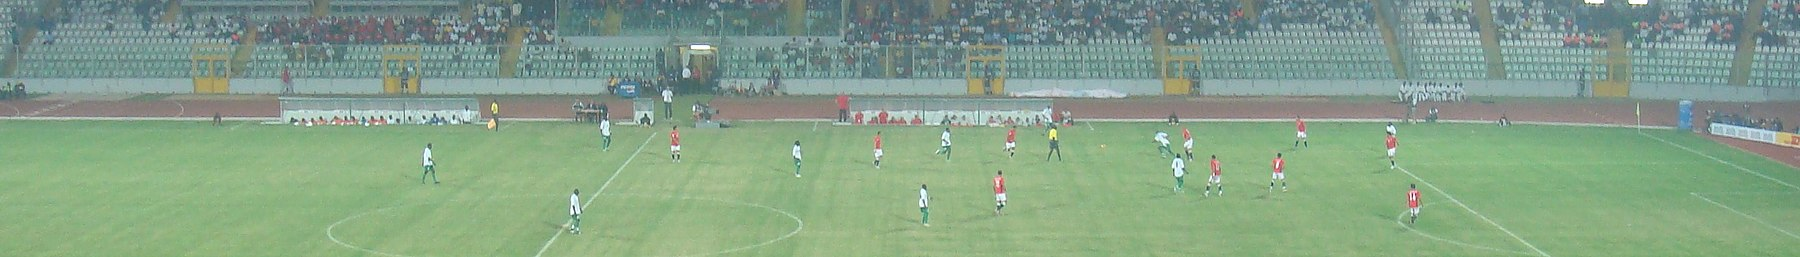 WV banner Kumasi Football game on Baba Yara sports stadium.jpg